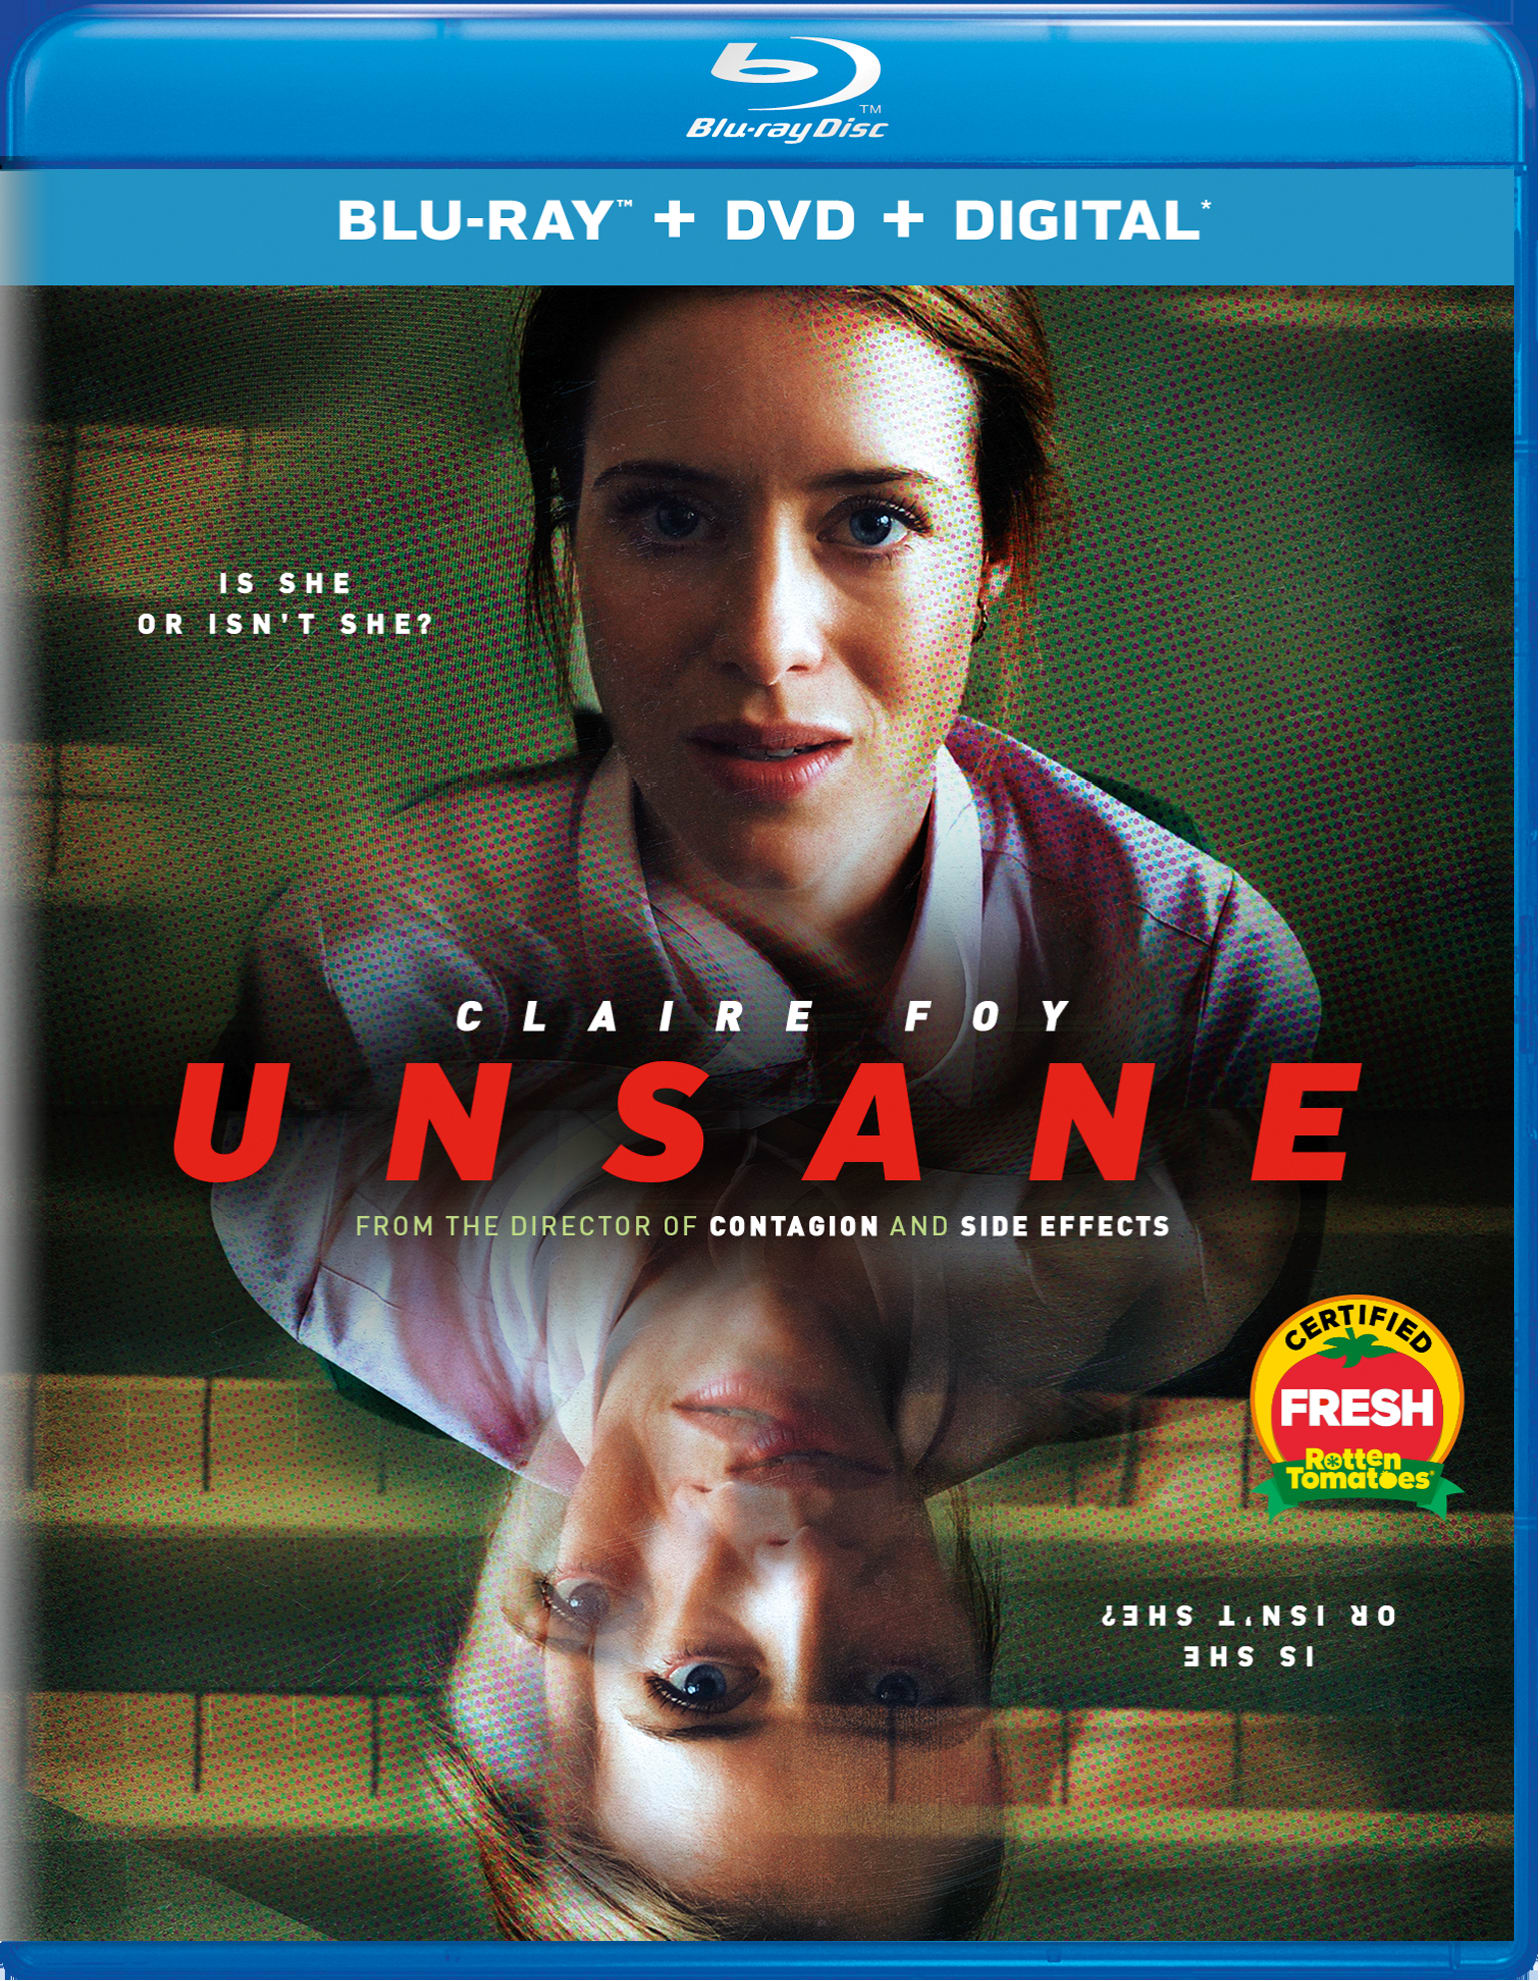 Unsane (DVD + Digital) [Blu-ray]